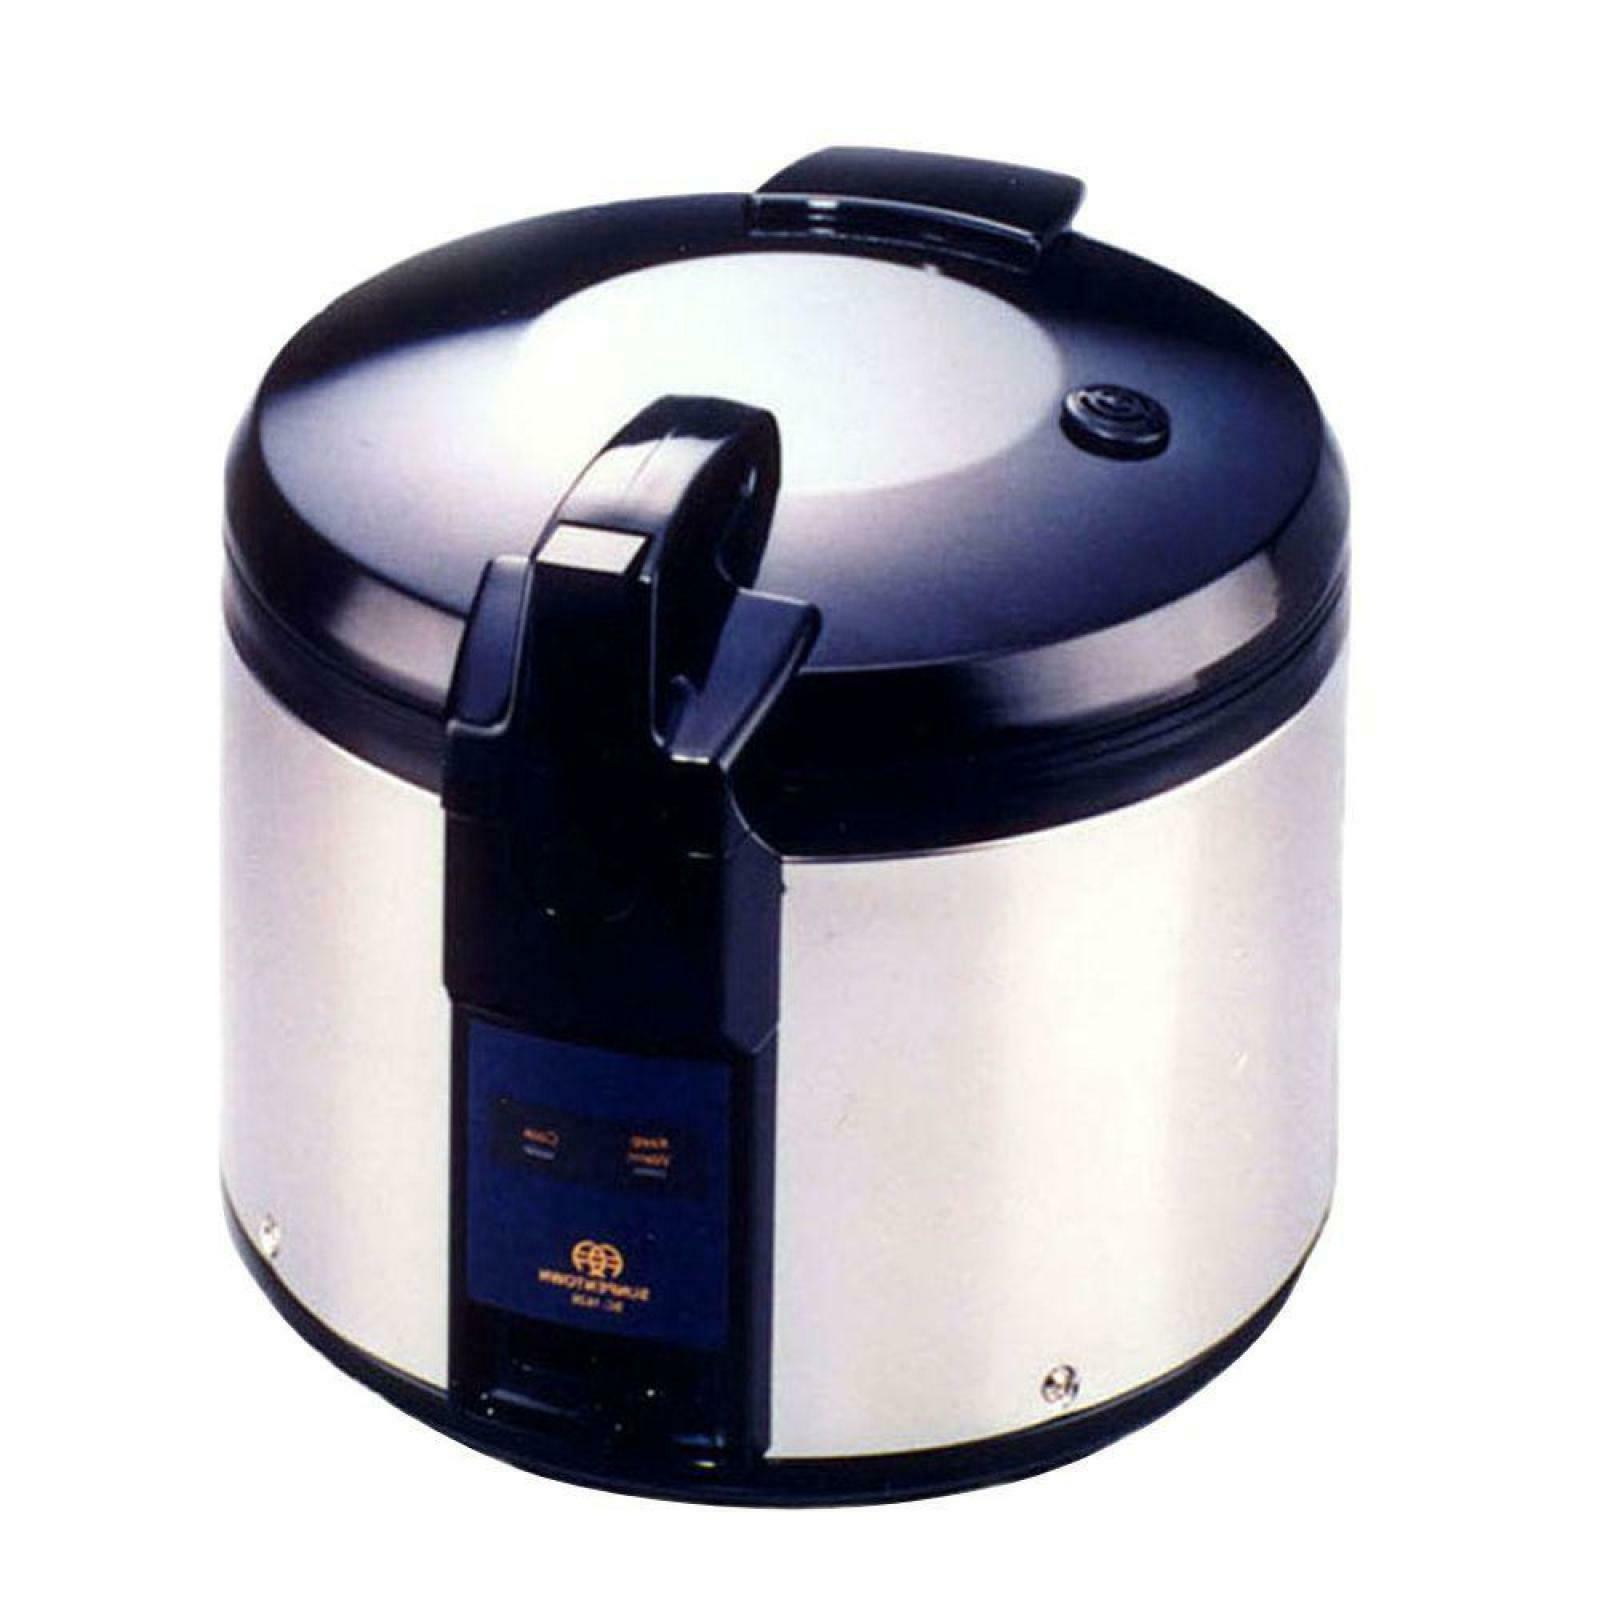 SPT SC-1626 26-Cup  Rice Cooker, Black/Silver